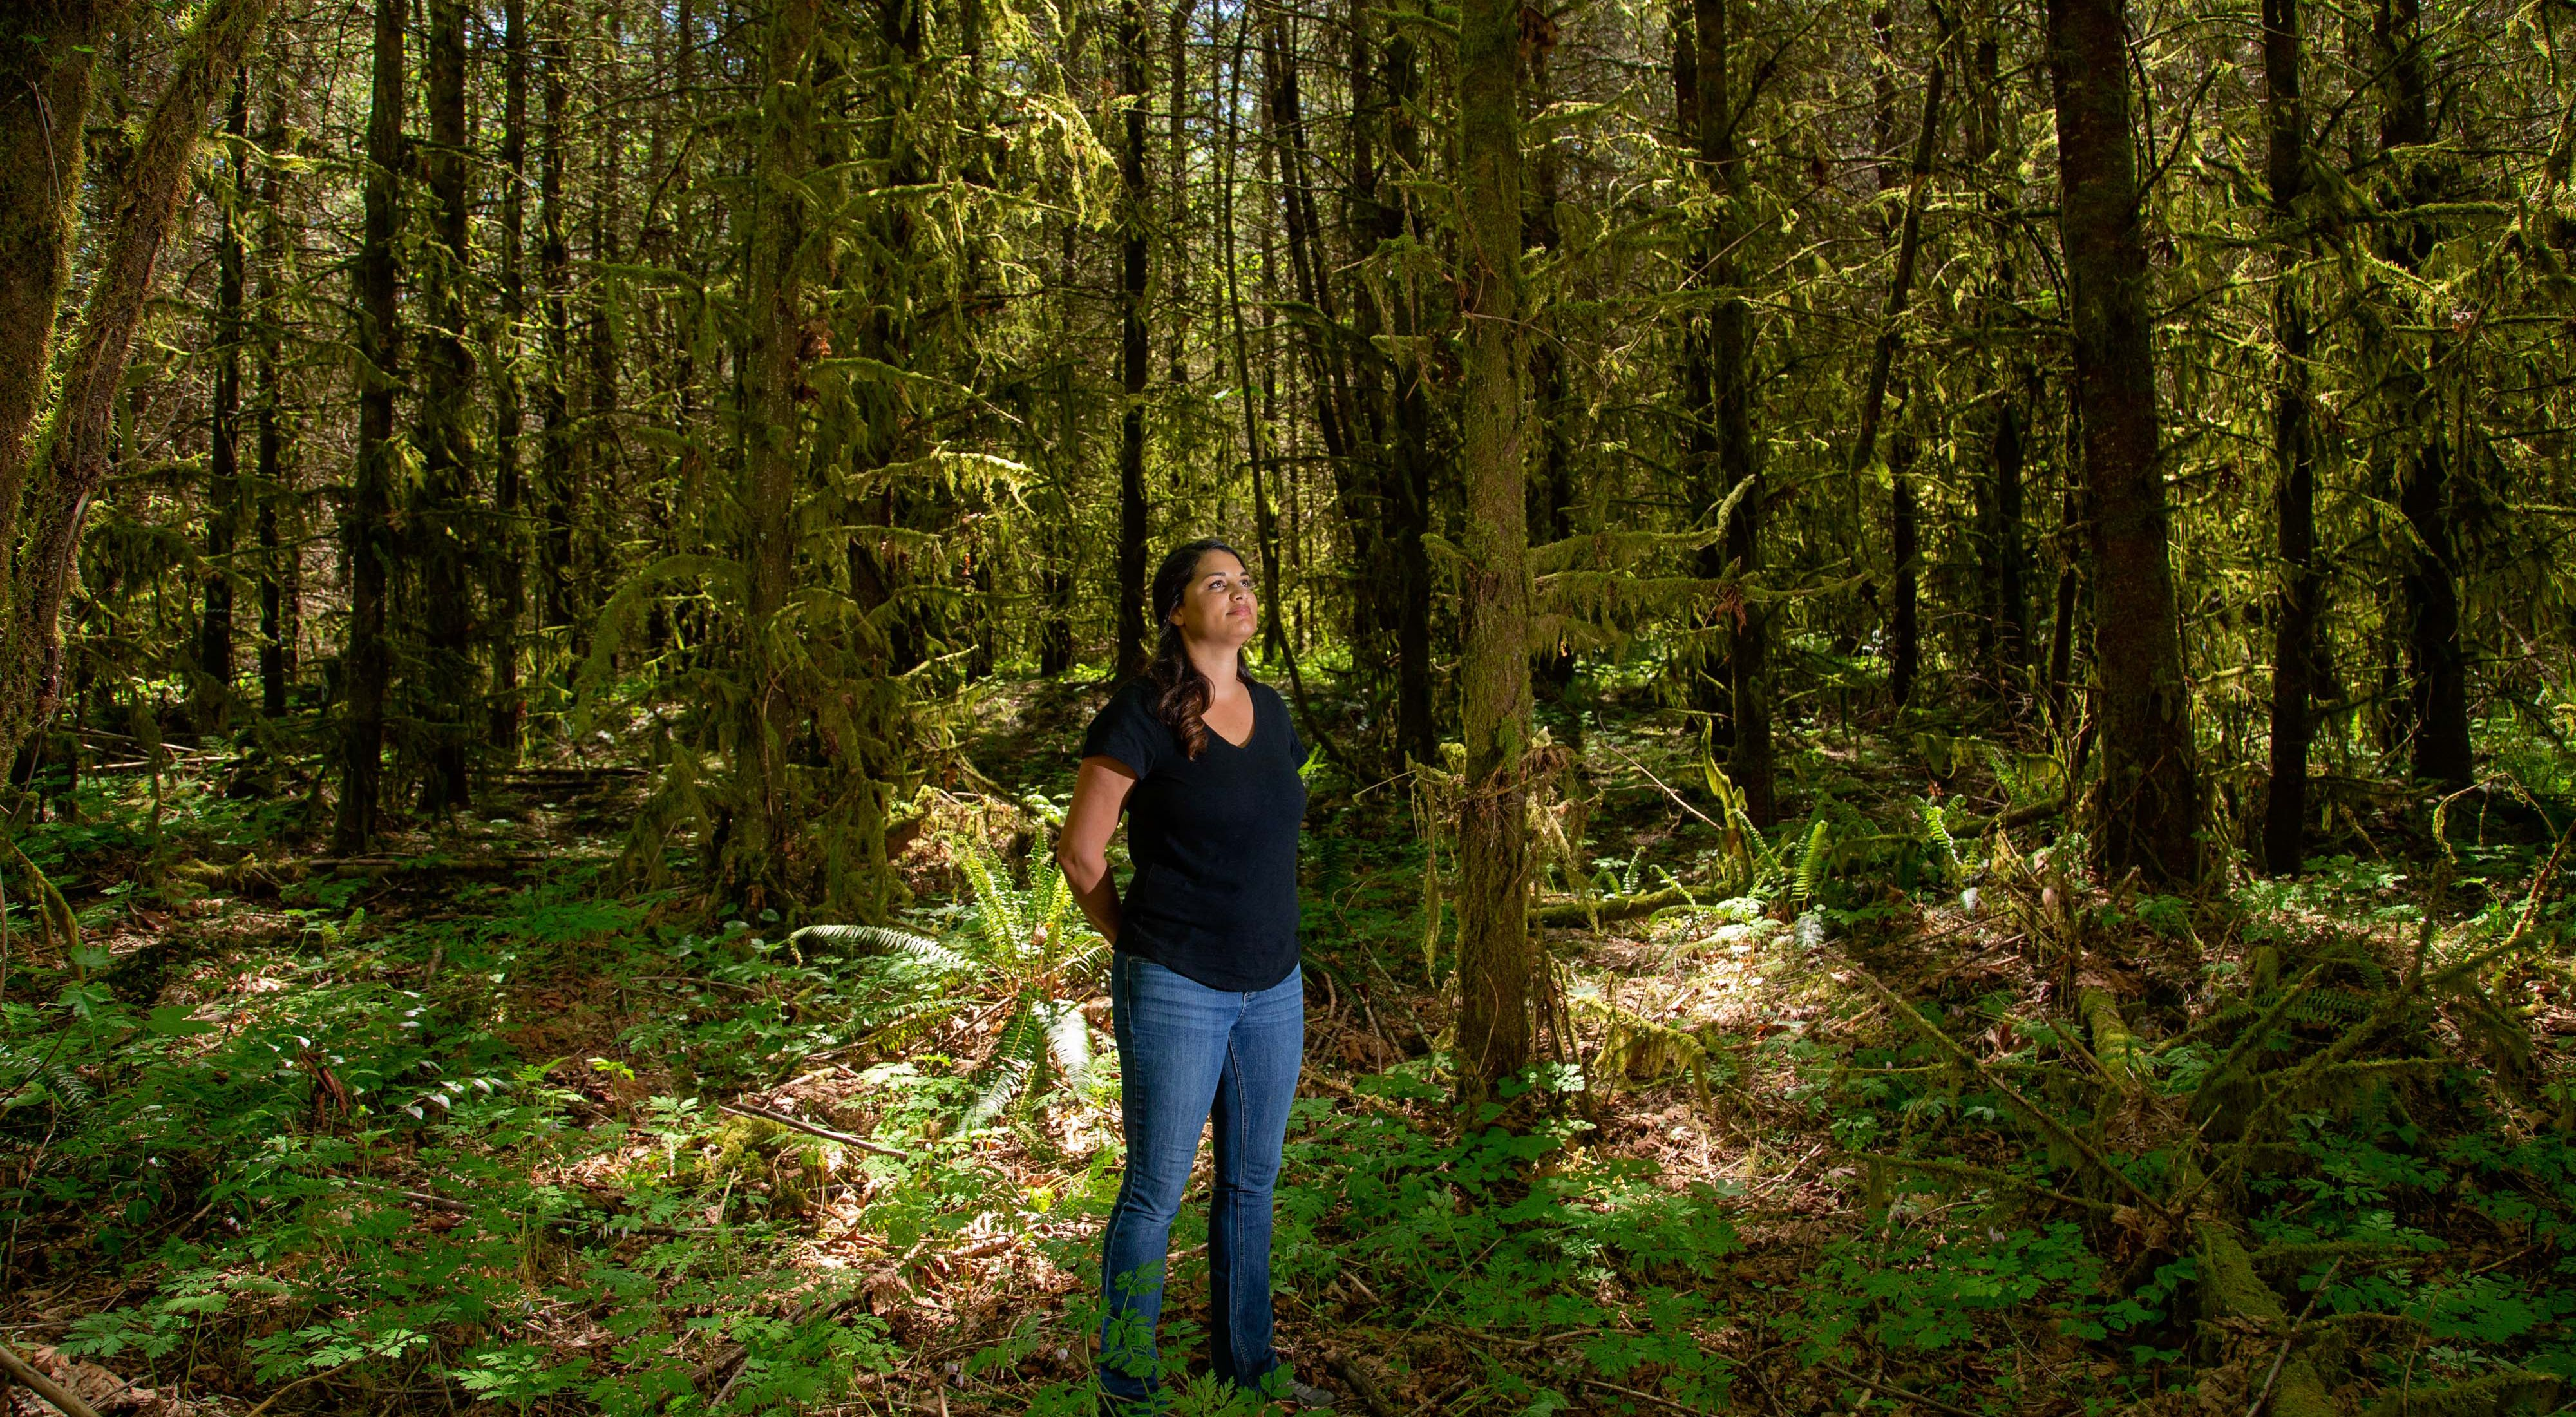 Kenison stands with hands behind her back and head raised in dense green forest in a column of sunlight